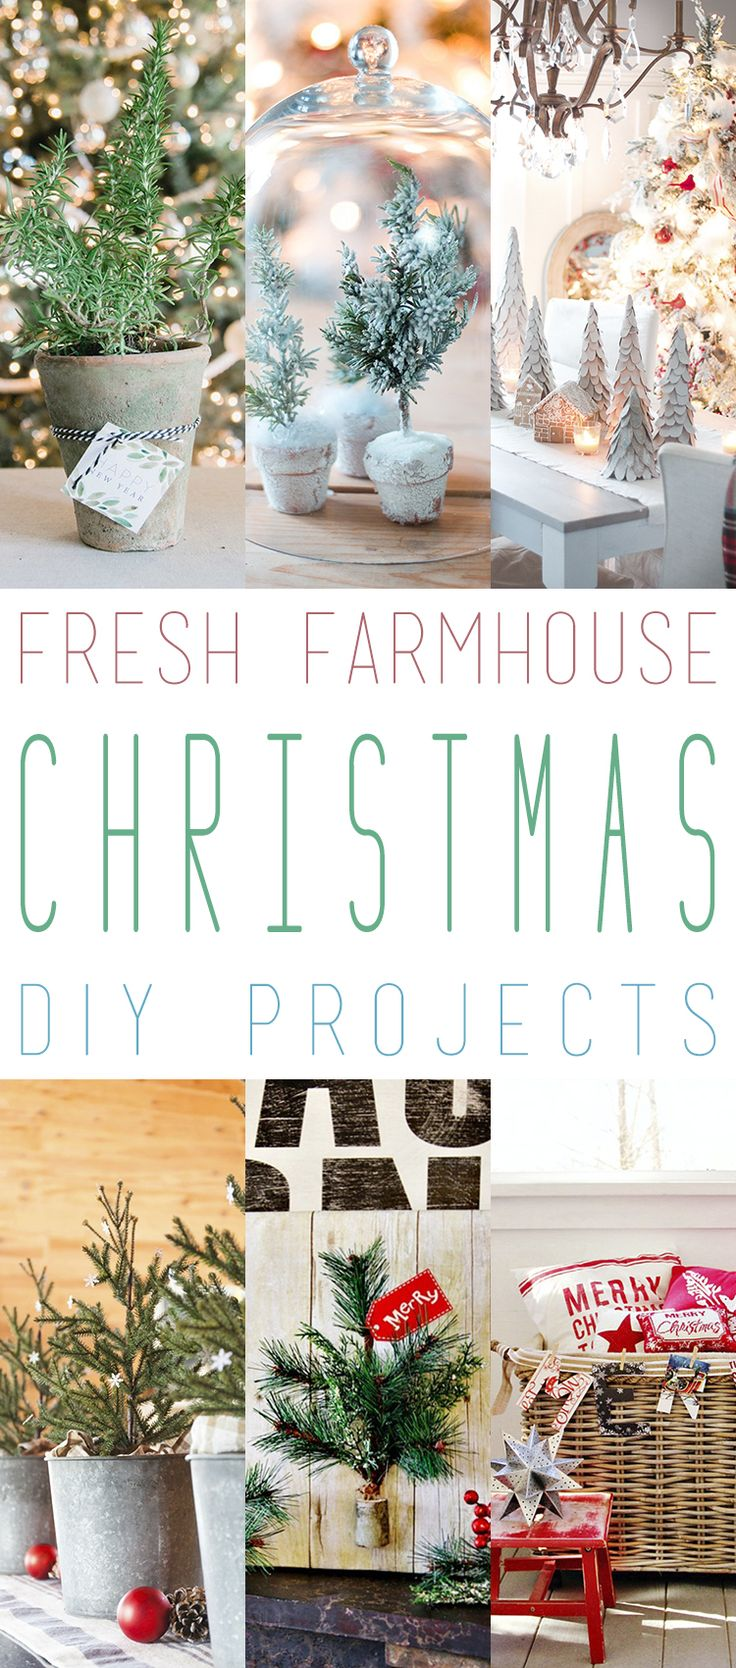 Fresh Farmhouse Christmas DIY Projects you will absolutely LOVE!